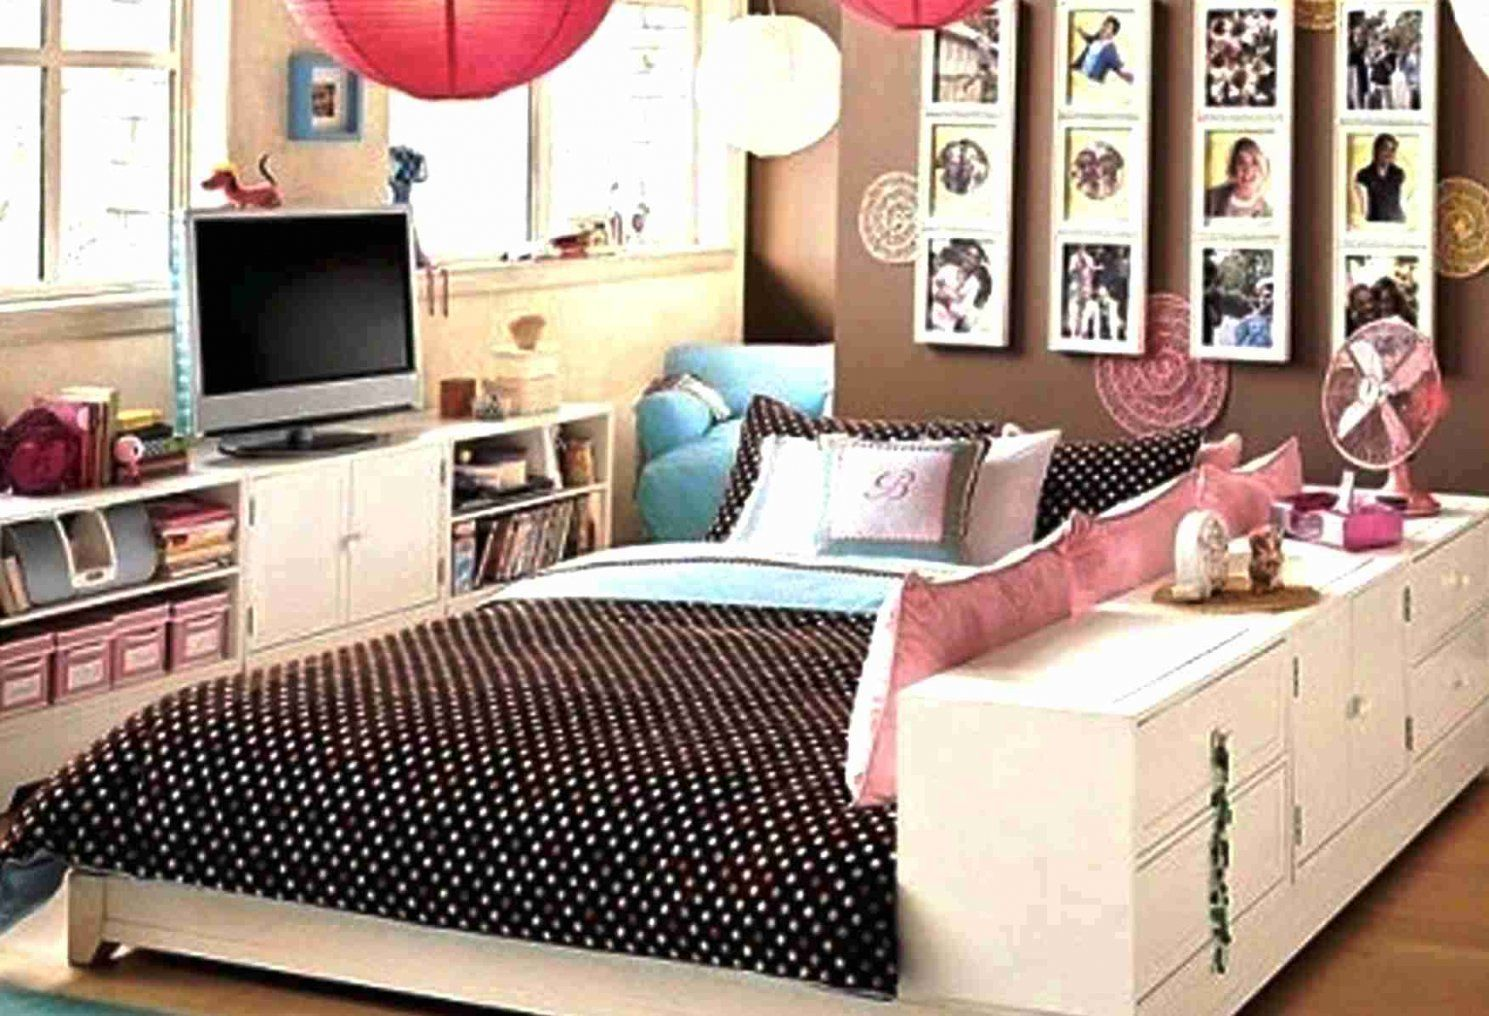 kleines zimmer einrichten tumblr d nisches bettenlager sanwald bettdecken drachen z hmen leicht. Black Bedroom Furniture Sets. Home Design Ideas